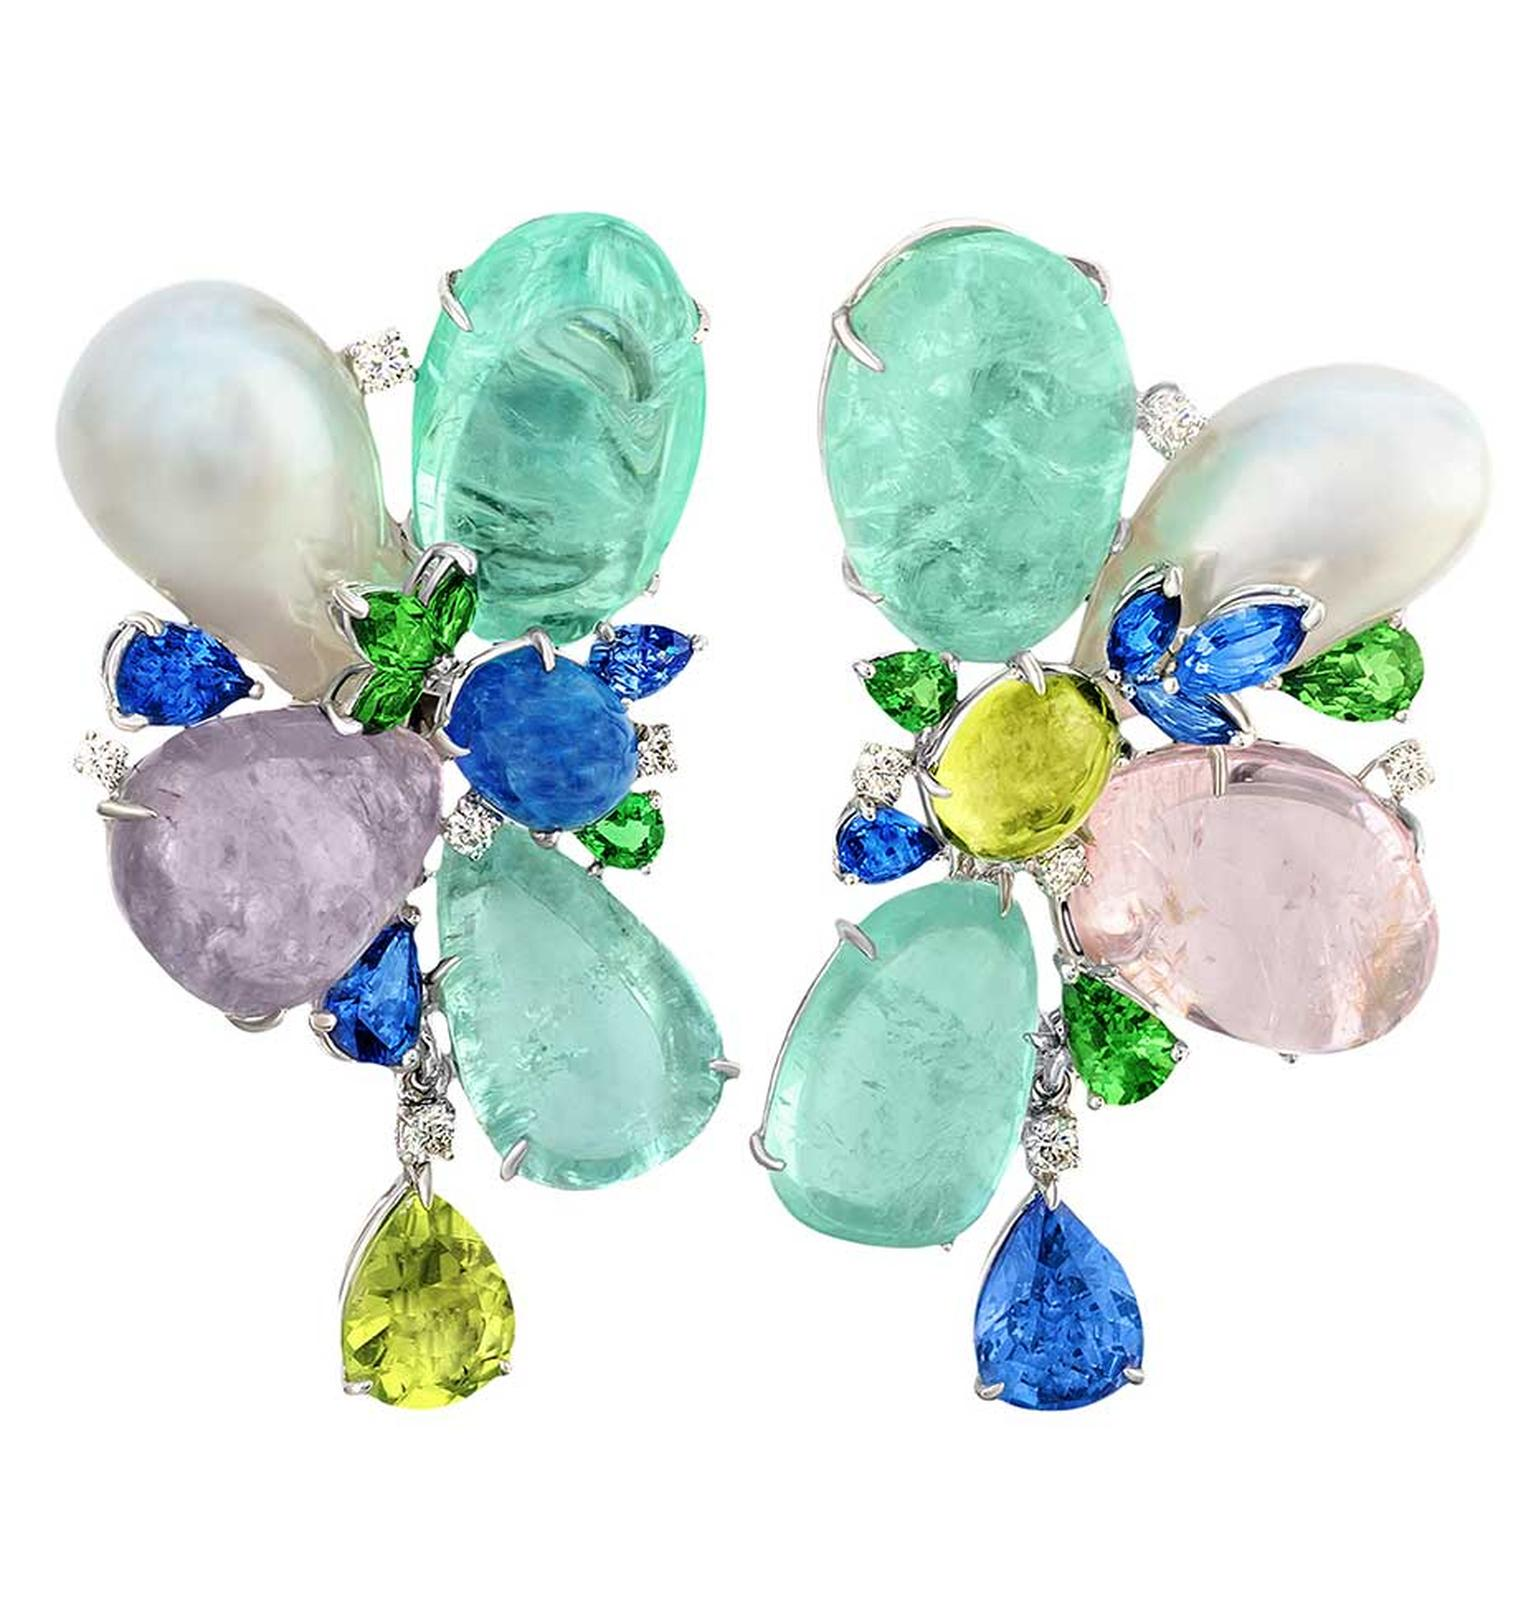 Margot McKinney high jewellery earrings set with African Paraiba-like tourmalines totalling 62.65ct, sapphires, tsavorite garnets, diamonds and South Sea pearls.